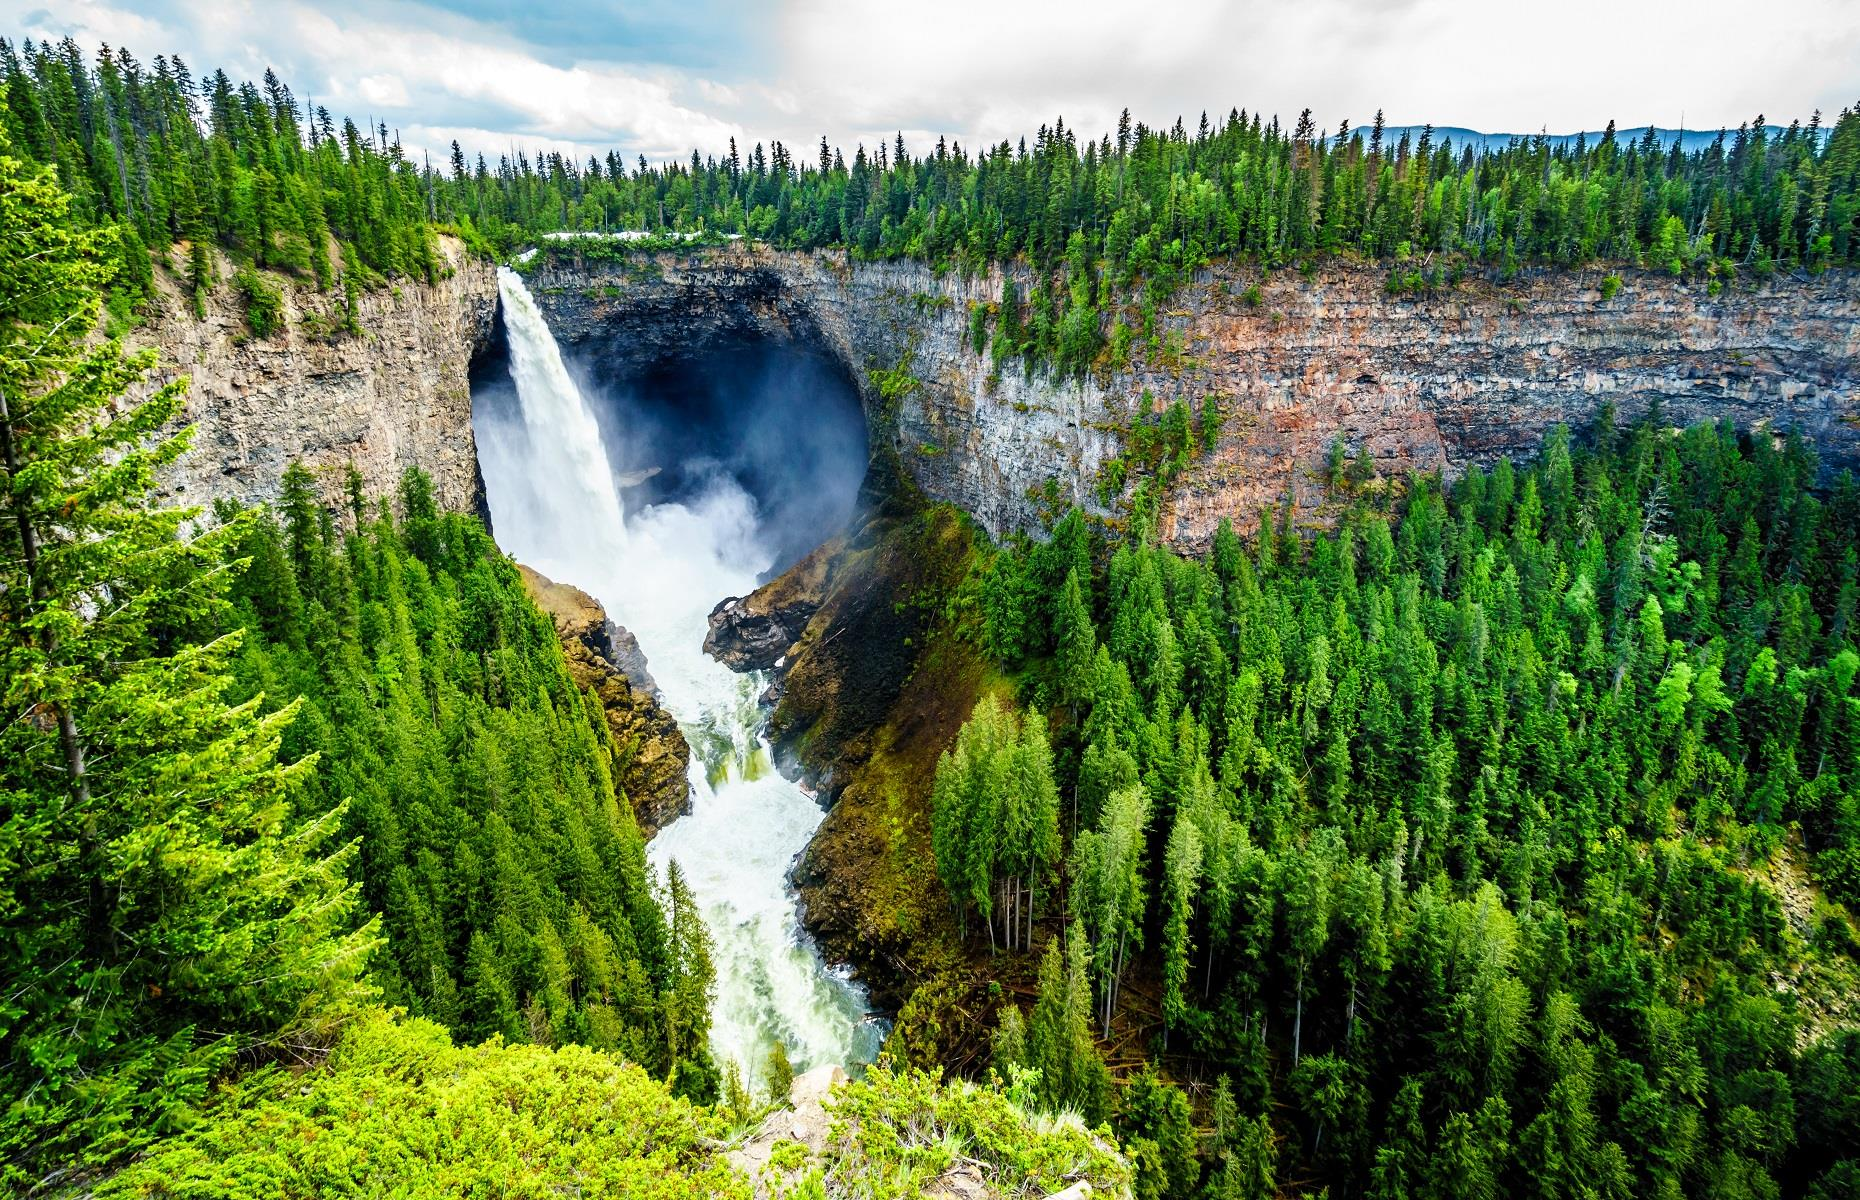 Slide 20 of 59: Here to prove that not all waterfalls were made equal, the Helmcken Falls in British Columbia is a sight to behold. Positioned on the Murtle River within Wells Gray Provincial Park, this 462-foot (141m) wonder was discovered in 1913 by Robert Henry Lee. Helmcken is by far one of the most scenic spots in all of North America and visitors can enjoy panoramic views of the titan from a viewing platform on the rim of the canyon.